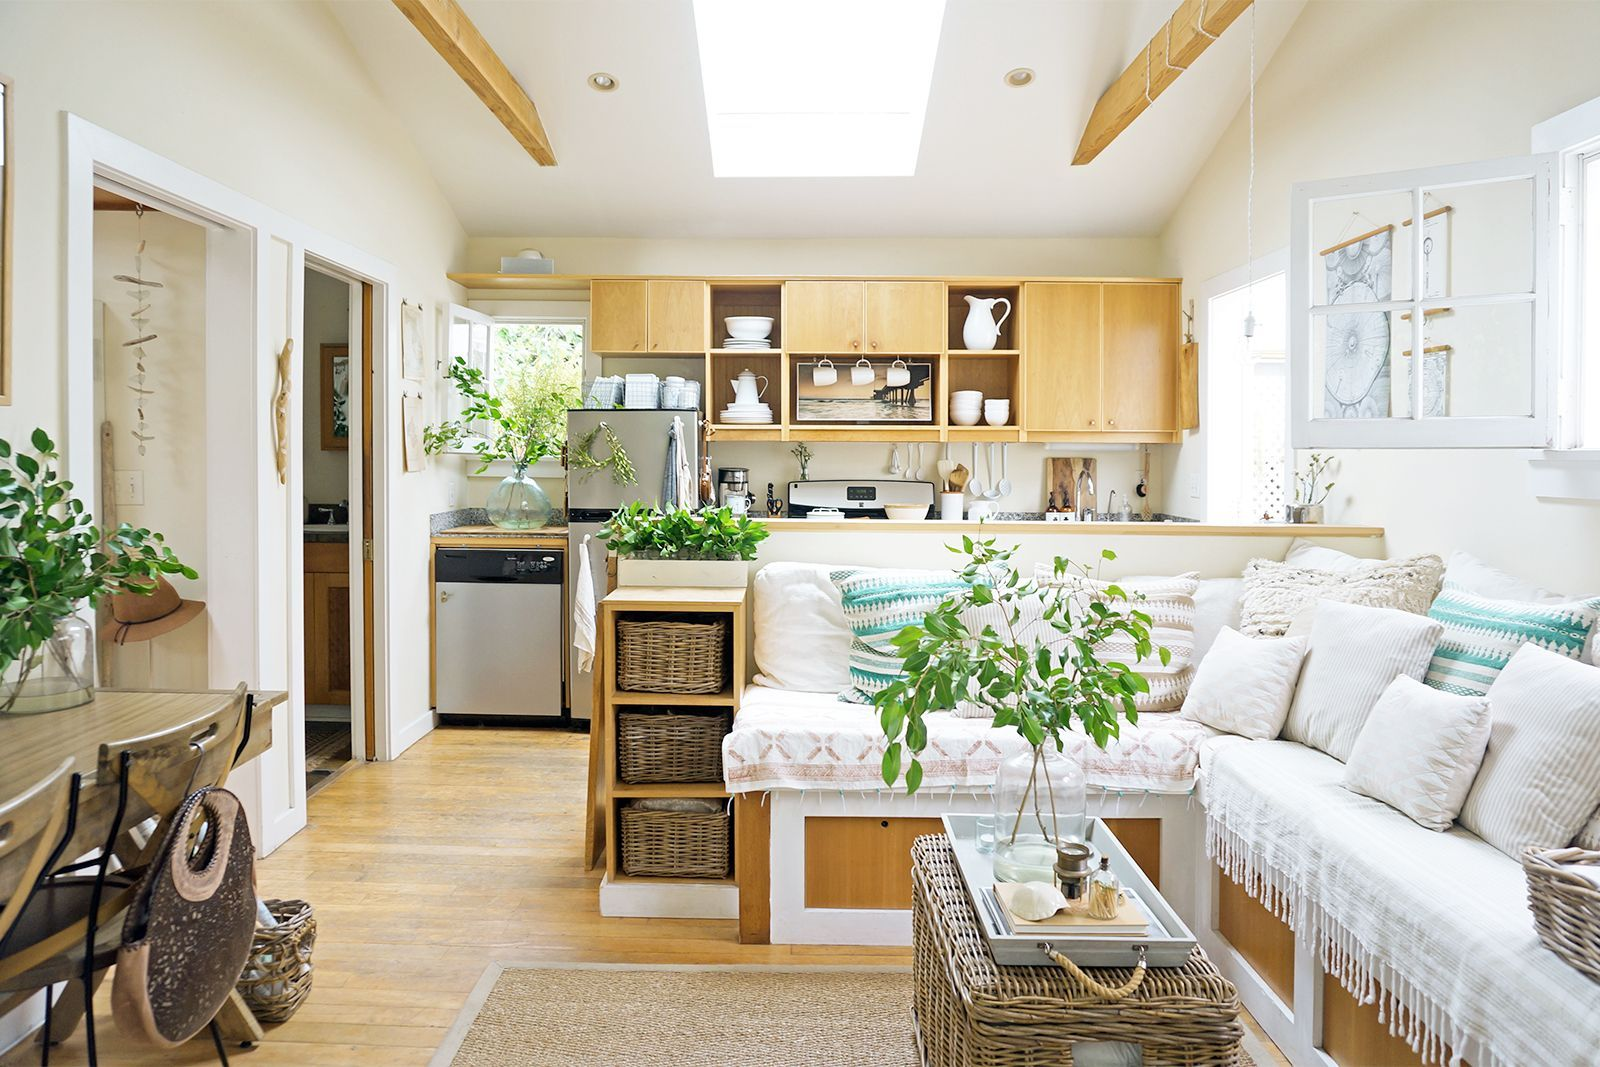 This Tiny, 362 Square Foot Beach Cottage Is BIG On Style